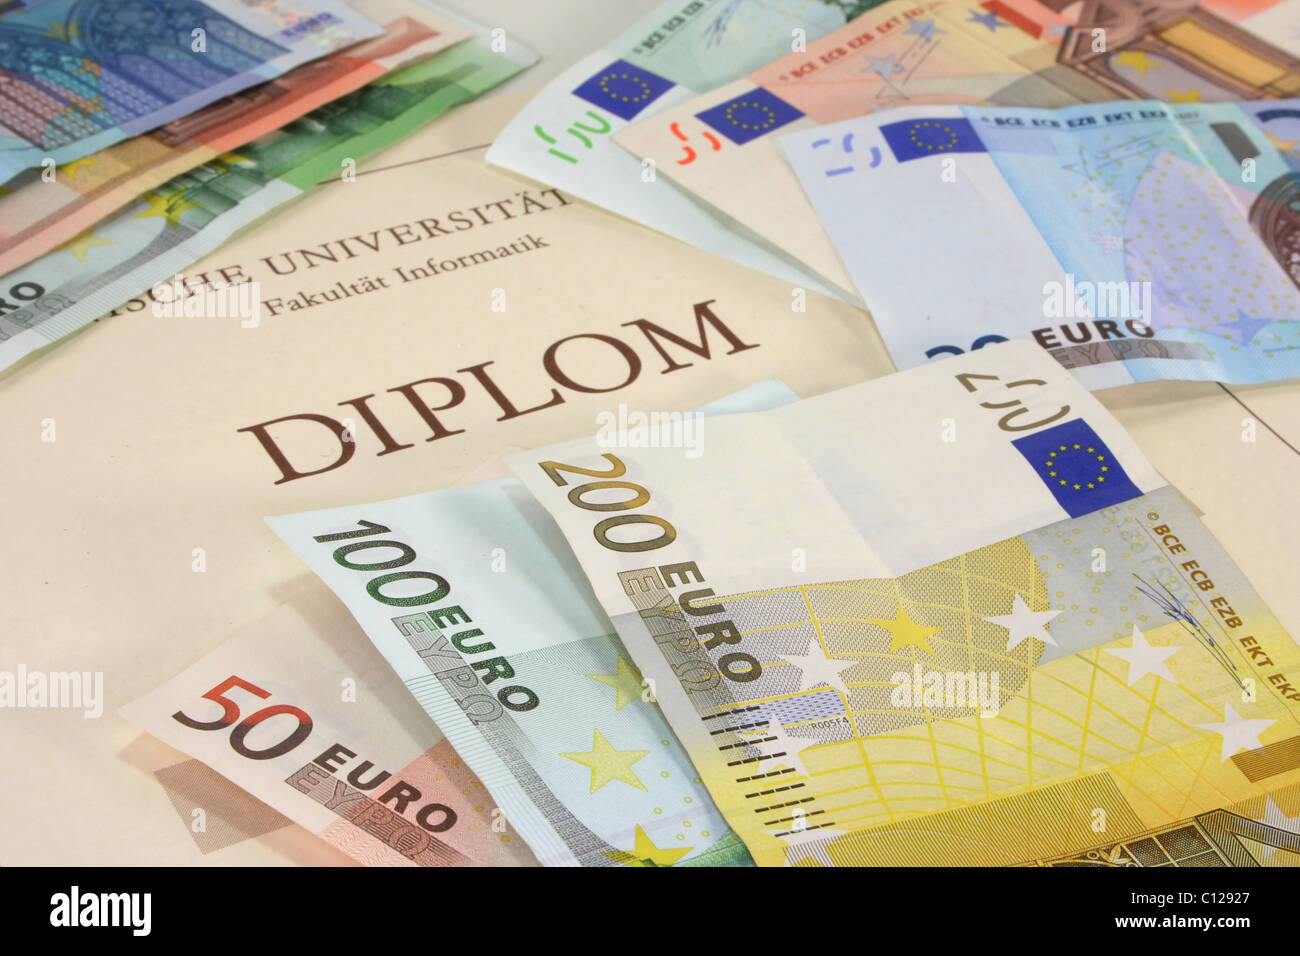 purchased diploma - diploma certificate with many euro notes - Stock Image